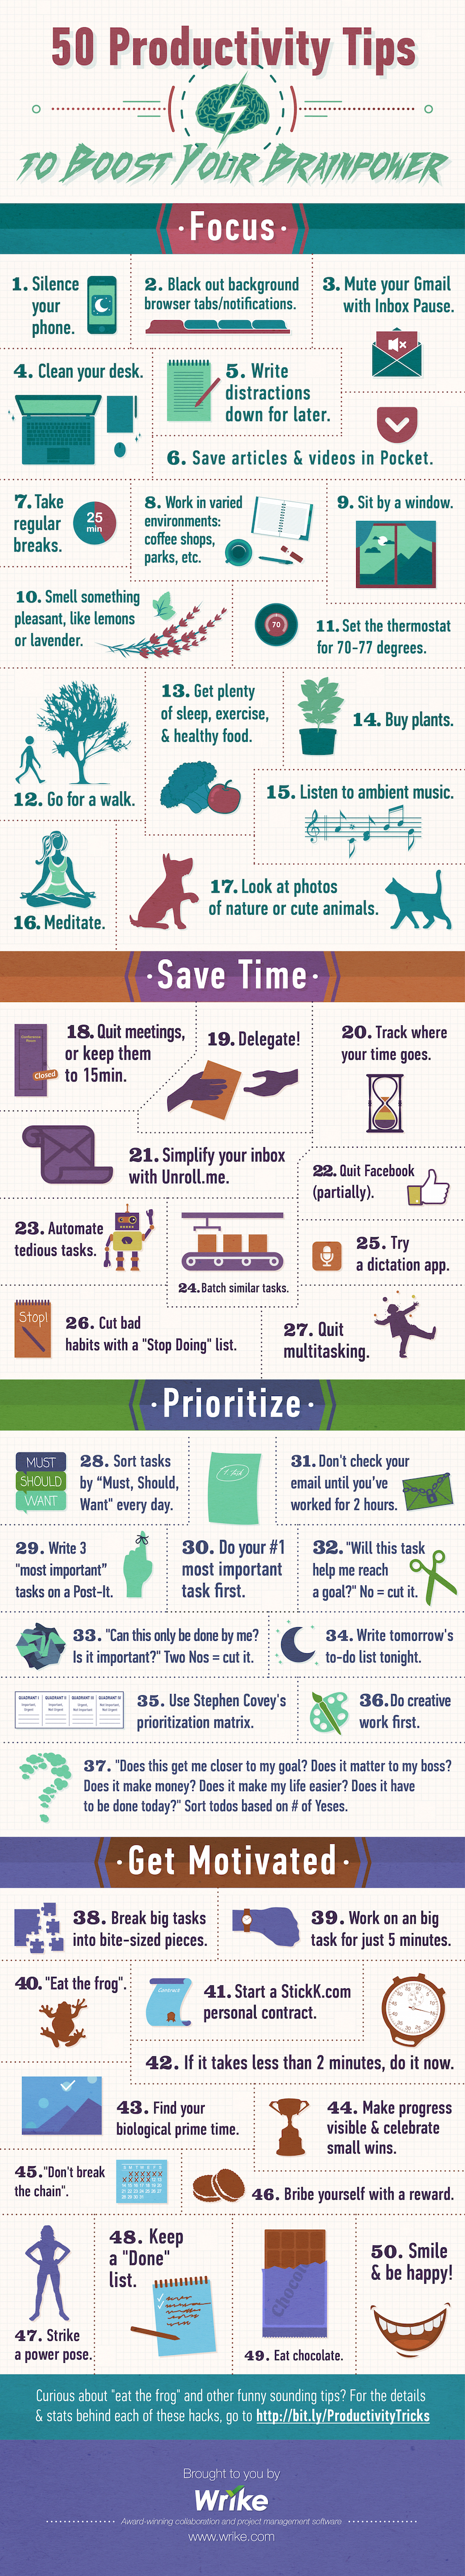 50 Productivity Tips to Boost Your Brainpower